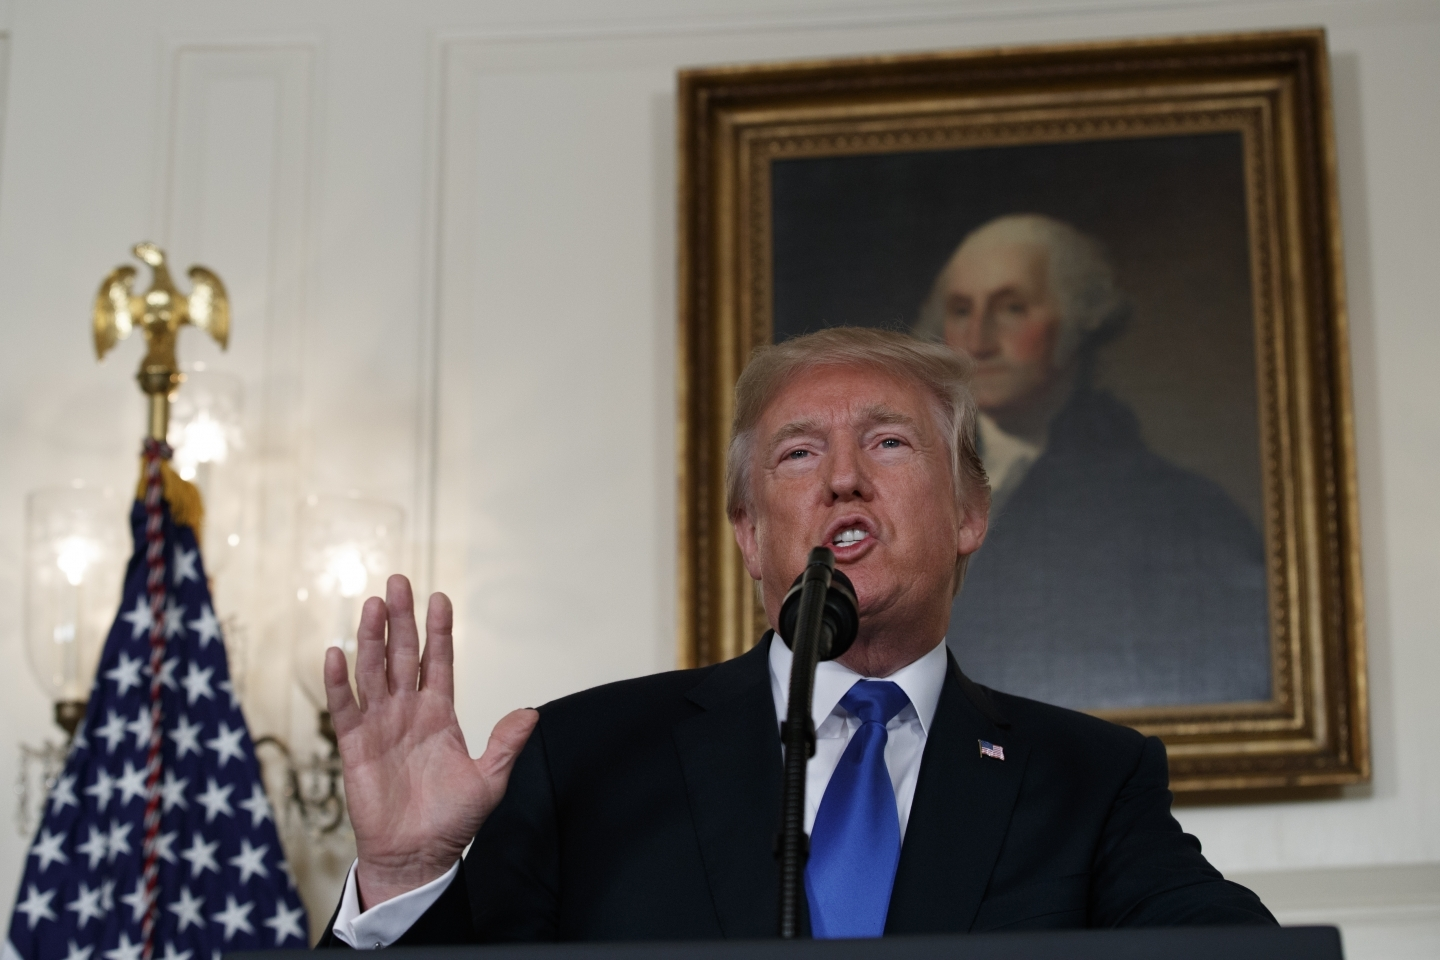 President Donald Trump makes a statement on Iran policy on Friday, Oct. 13, 2017, in Washington. (AP Photo/Evan Vucci)